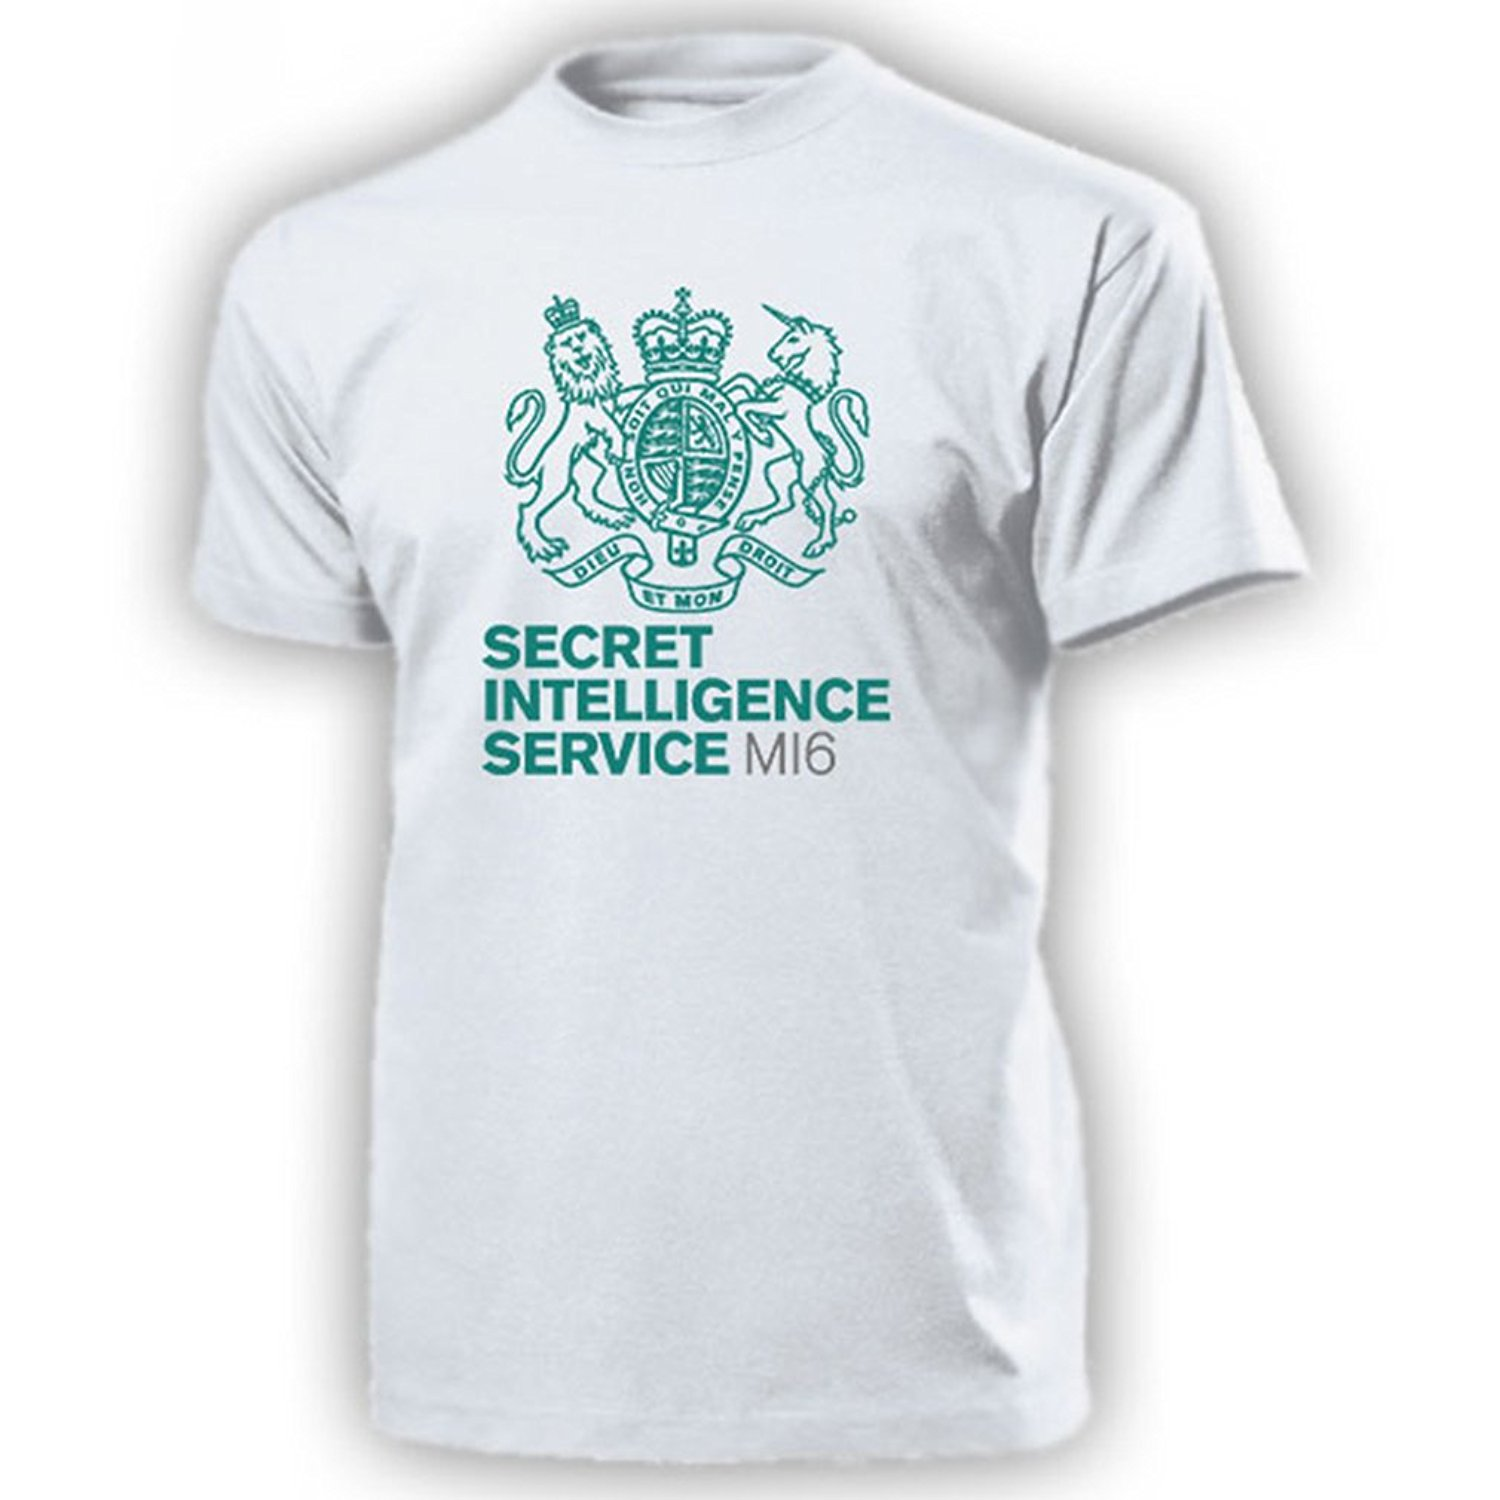 2018 Hot sale Fashion MI6 Secret Intelligence Service Foreign Great Britain Military Agent Tee shirt ...